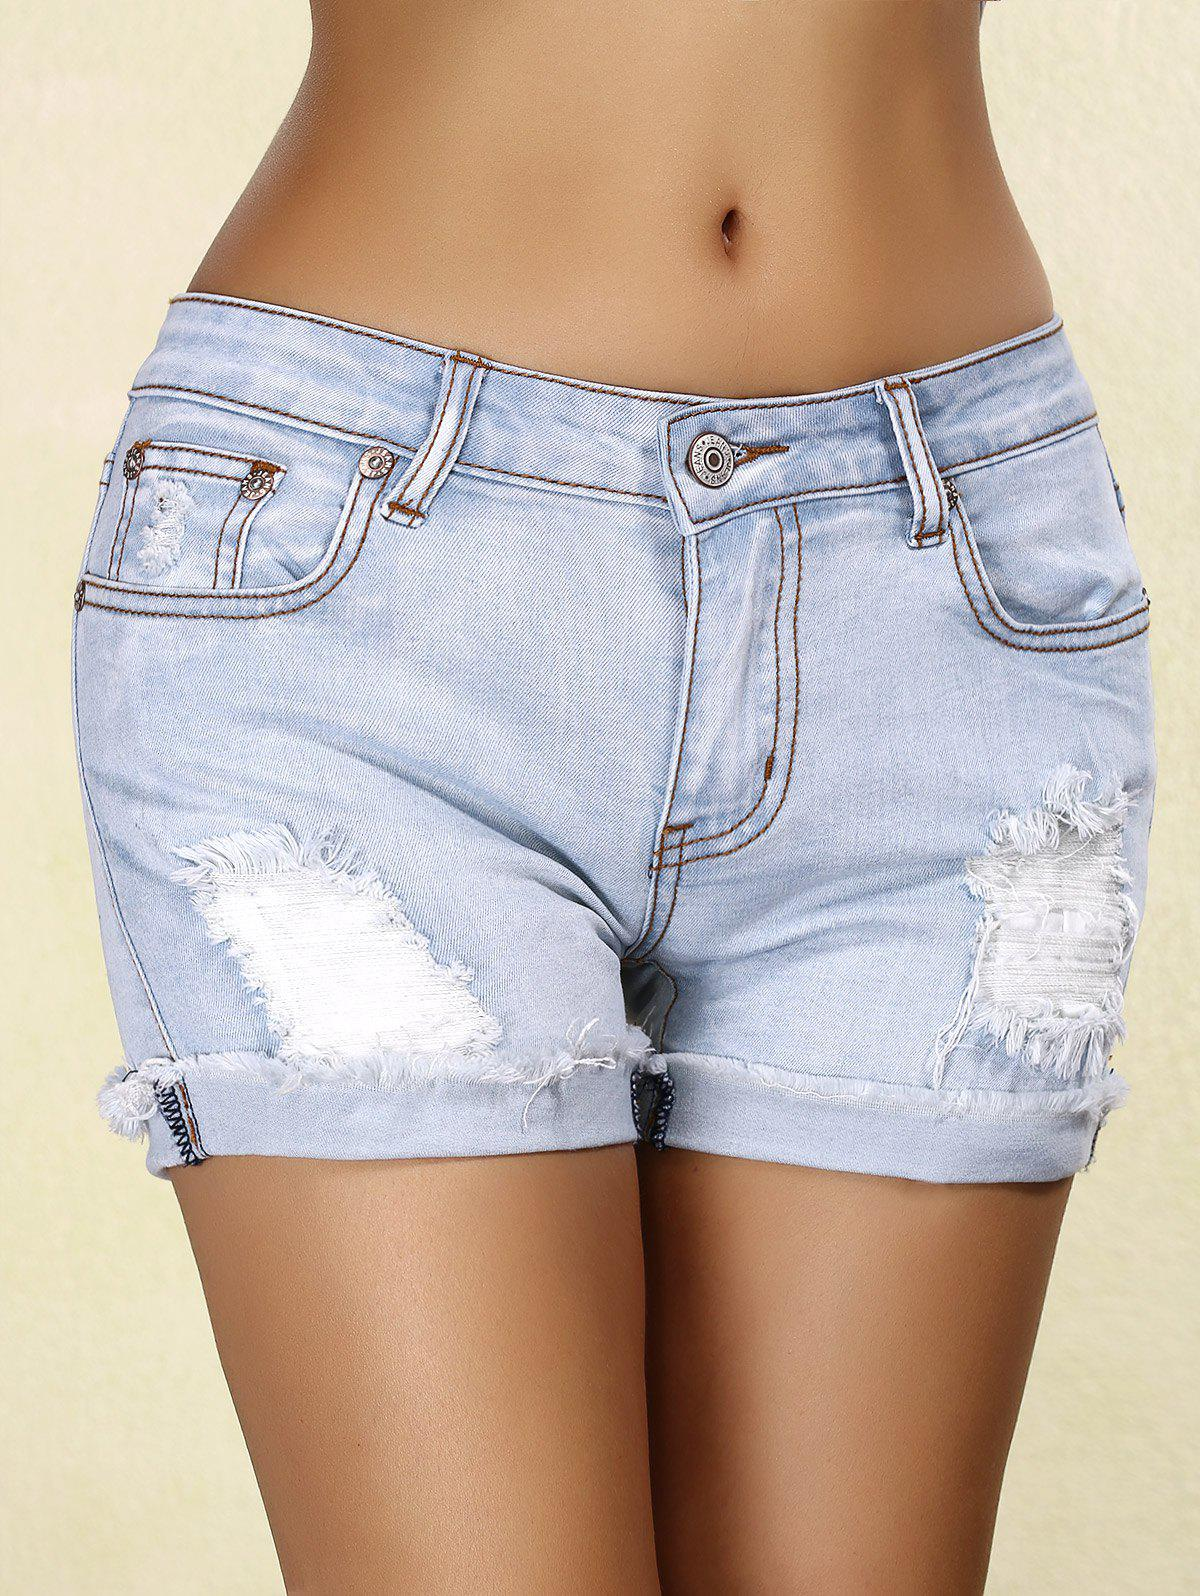 Stylish Rippped Denim Cuffed Women's Shorts - BLUE GRAY S